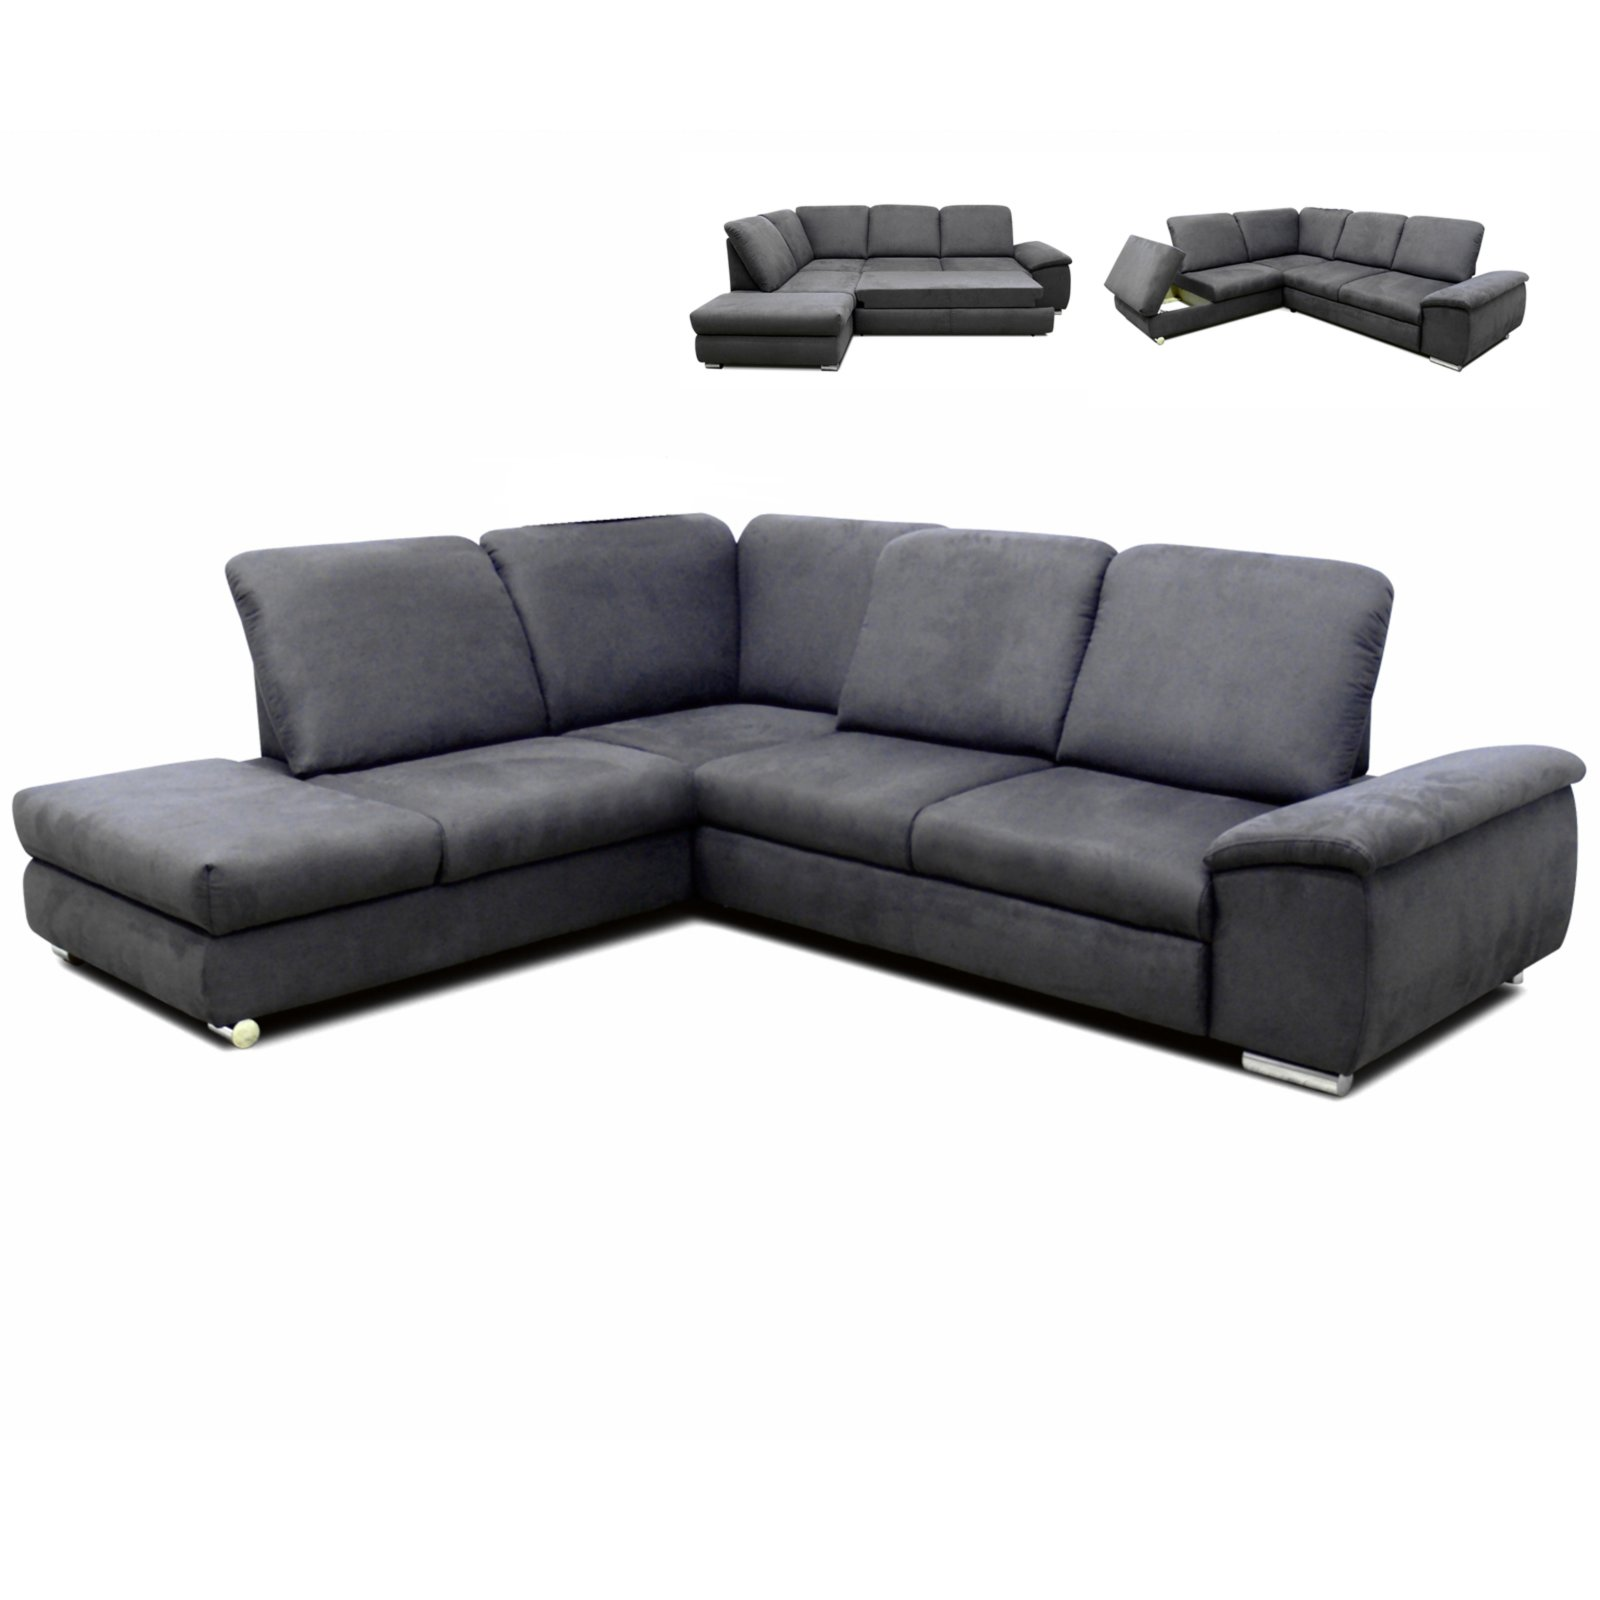 Polsterecke grau mit funktionen staukasten links for Sofa l form grau